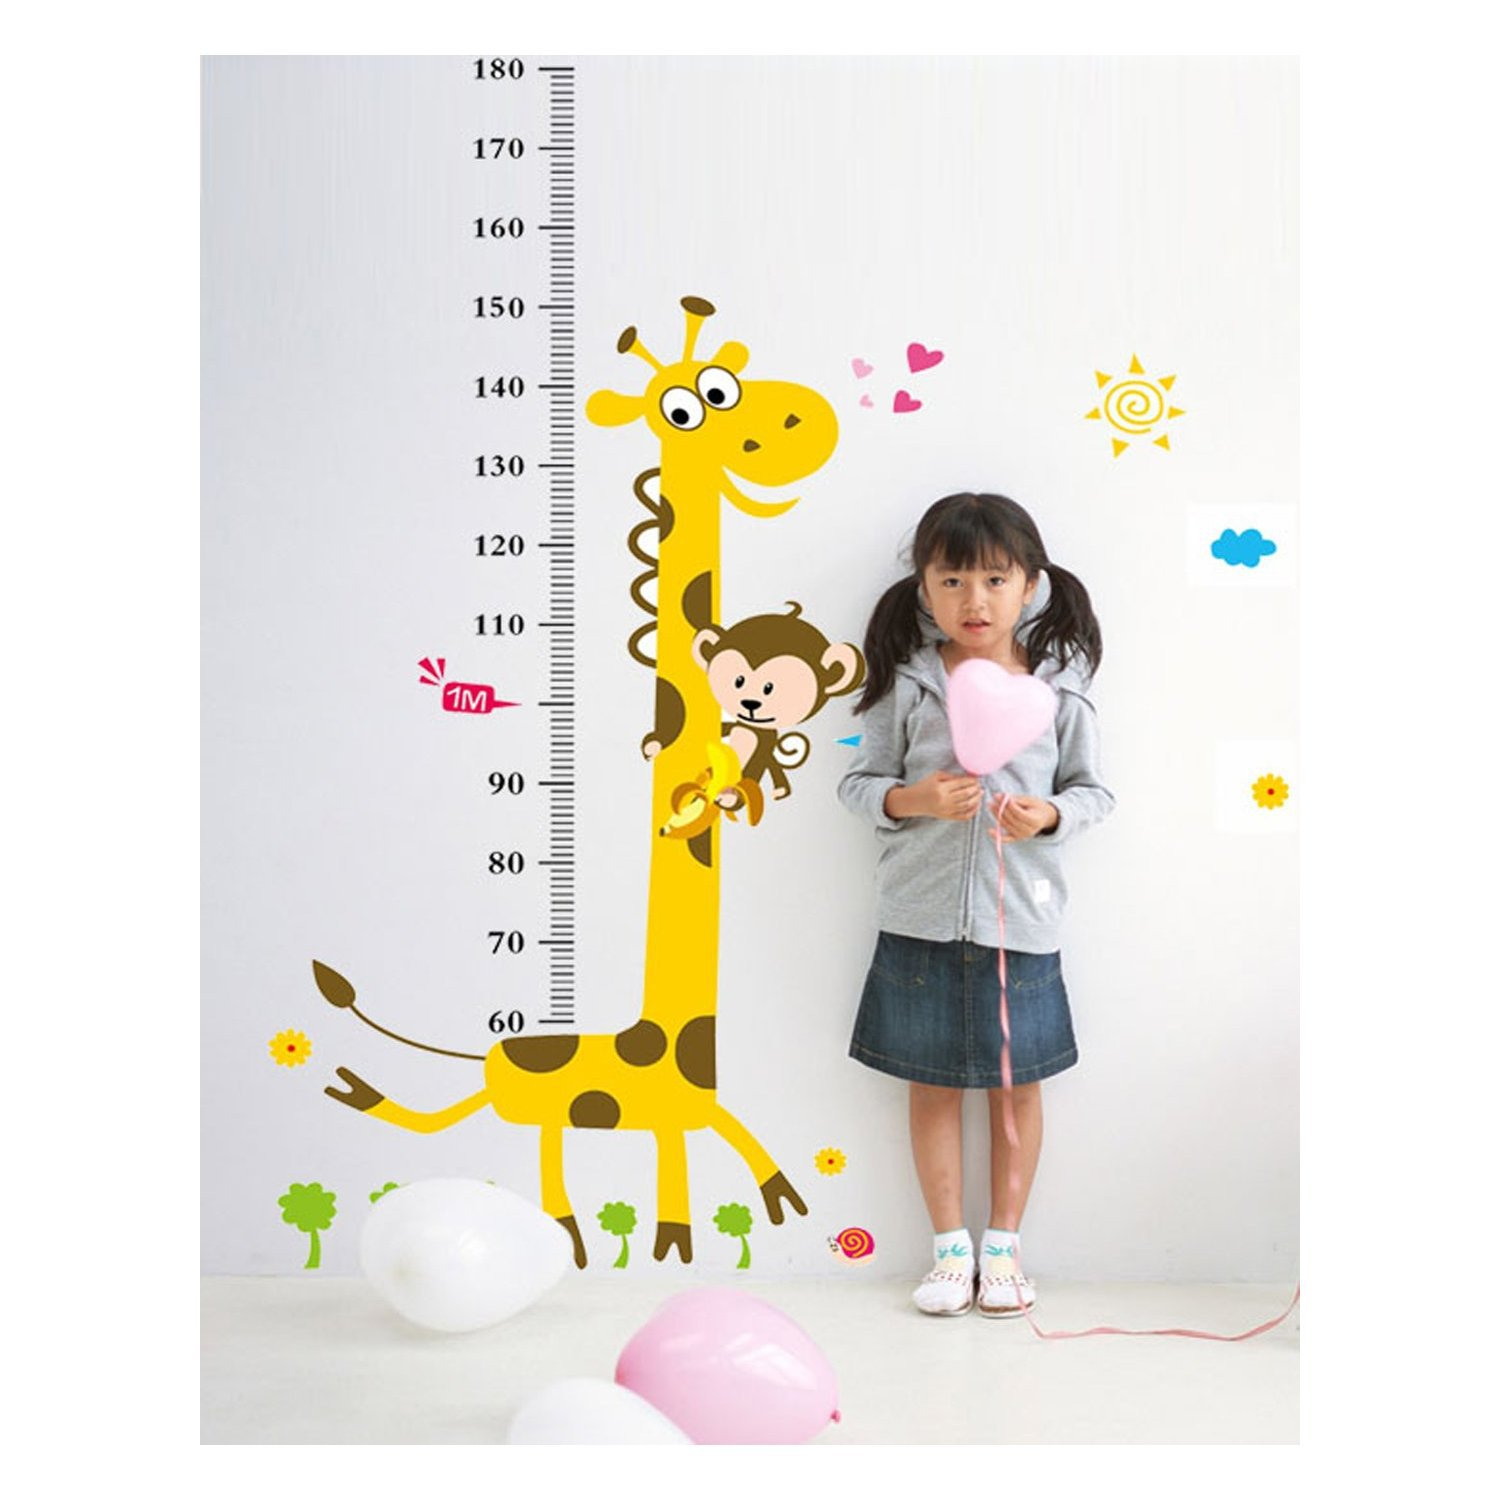 Uk high kid height measurement growth chart wall sticker cartoon features high qualitybrand new100 materialnontoxic pvc which is removable without residue remaining on the surface non toxic environmental protection nvjuhfo Choice Image